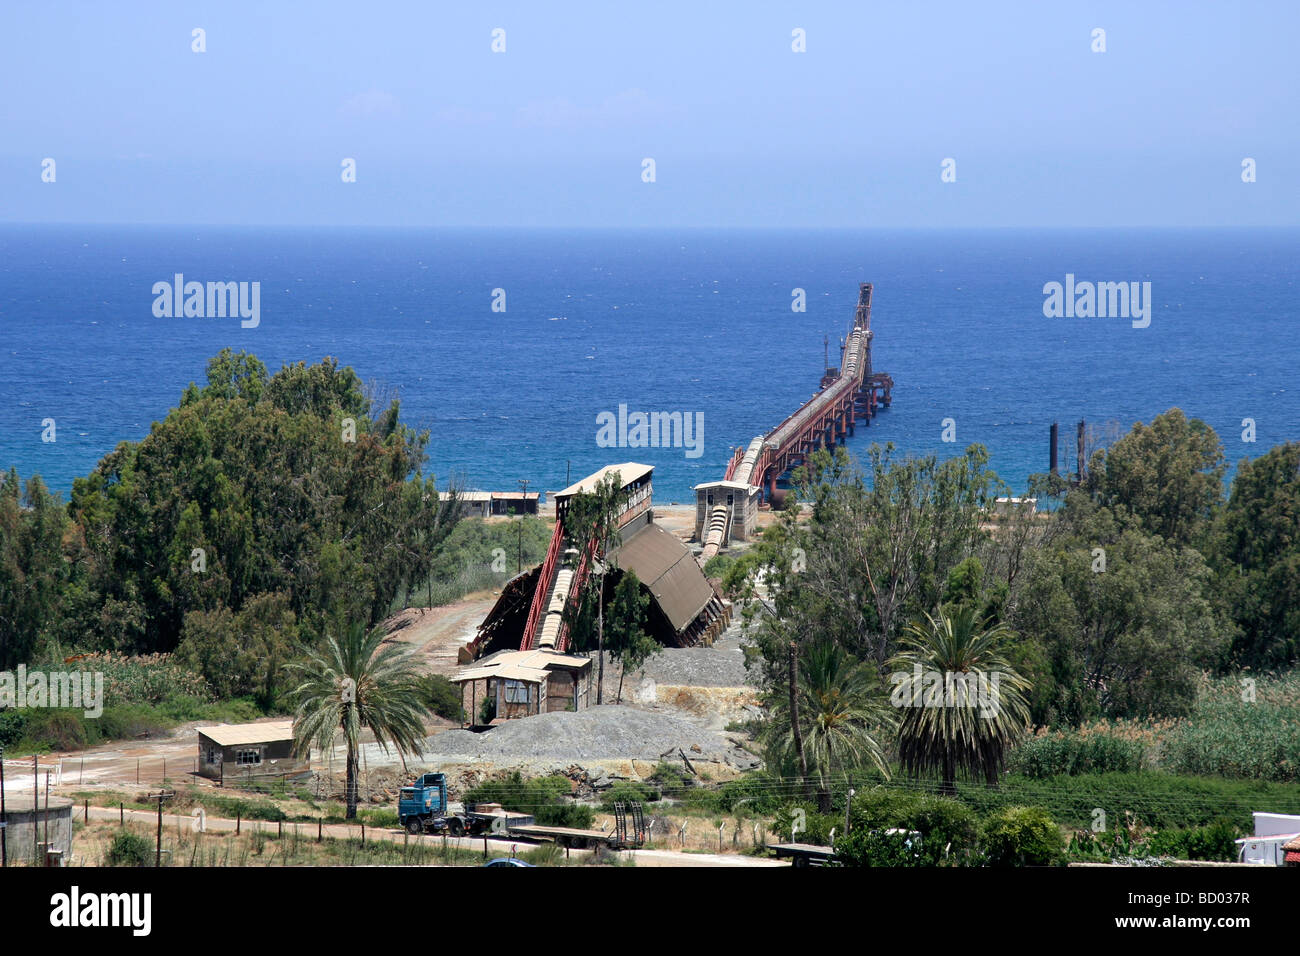 Cmc Stock Photos Images Alamy Motorcycle Wiring Diagram The Now Derelict Pier Of Or Cyprus Mining Corporation Used For Loading Copper Ore